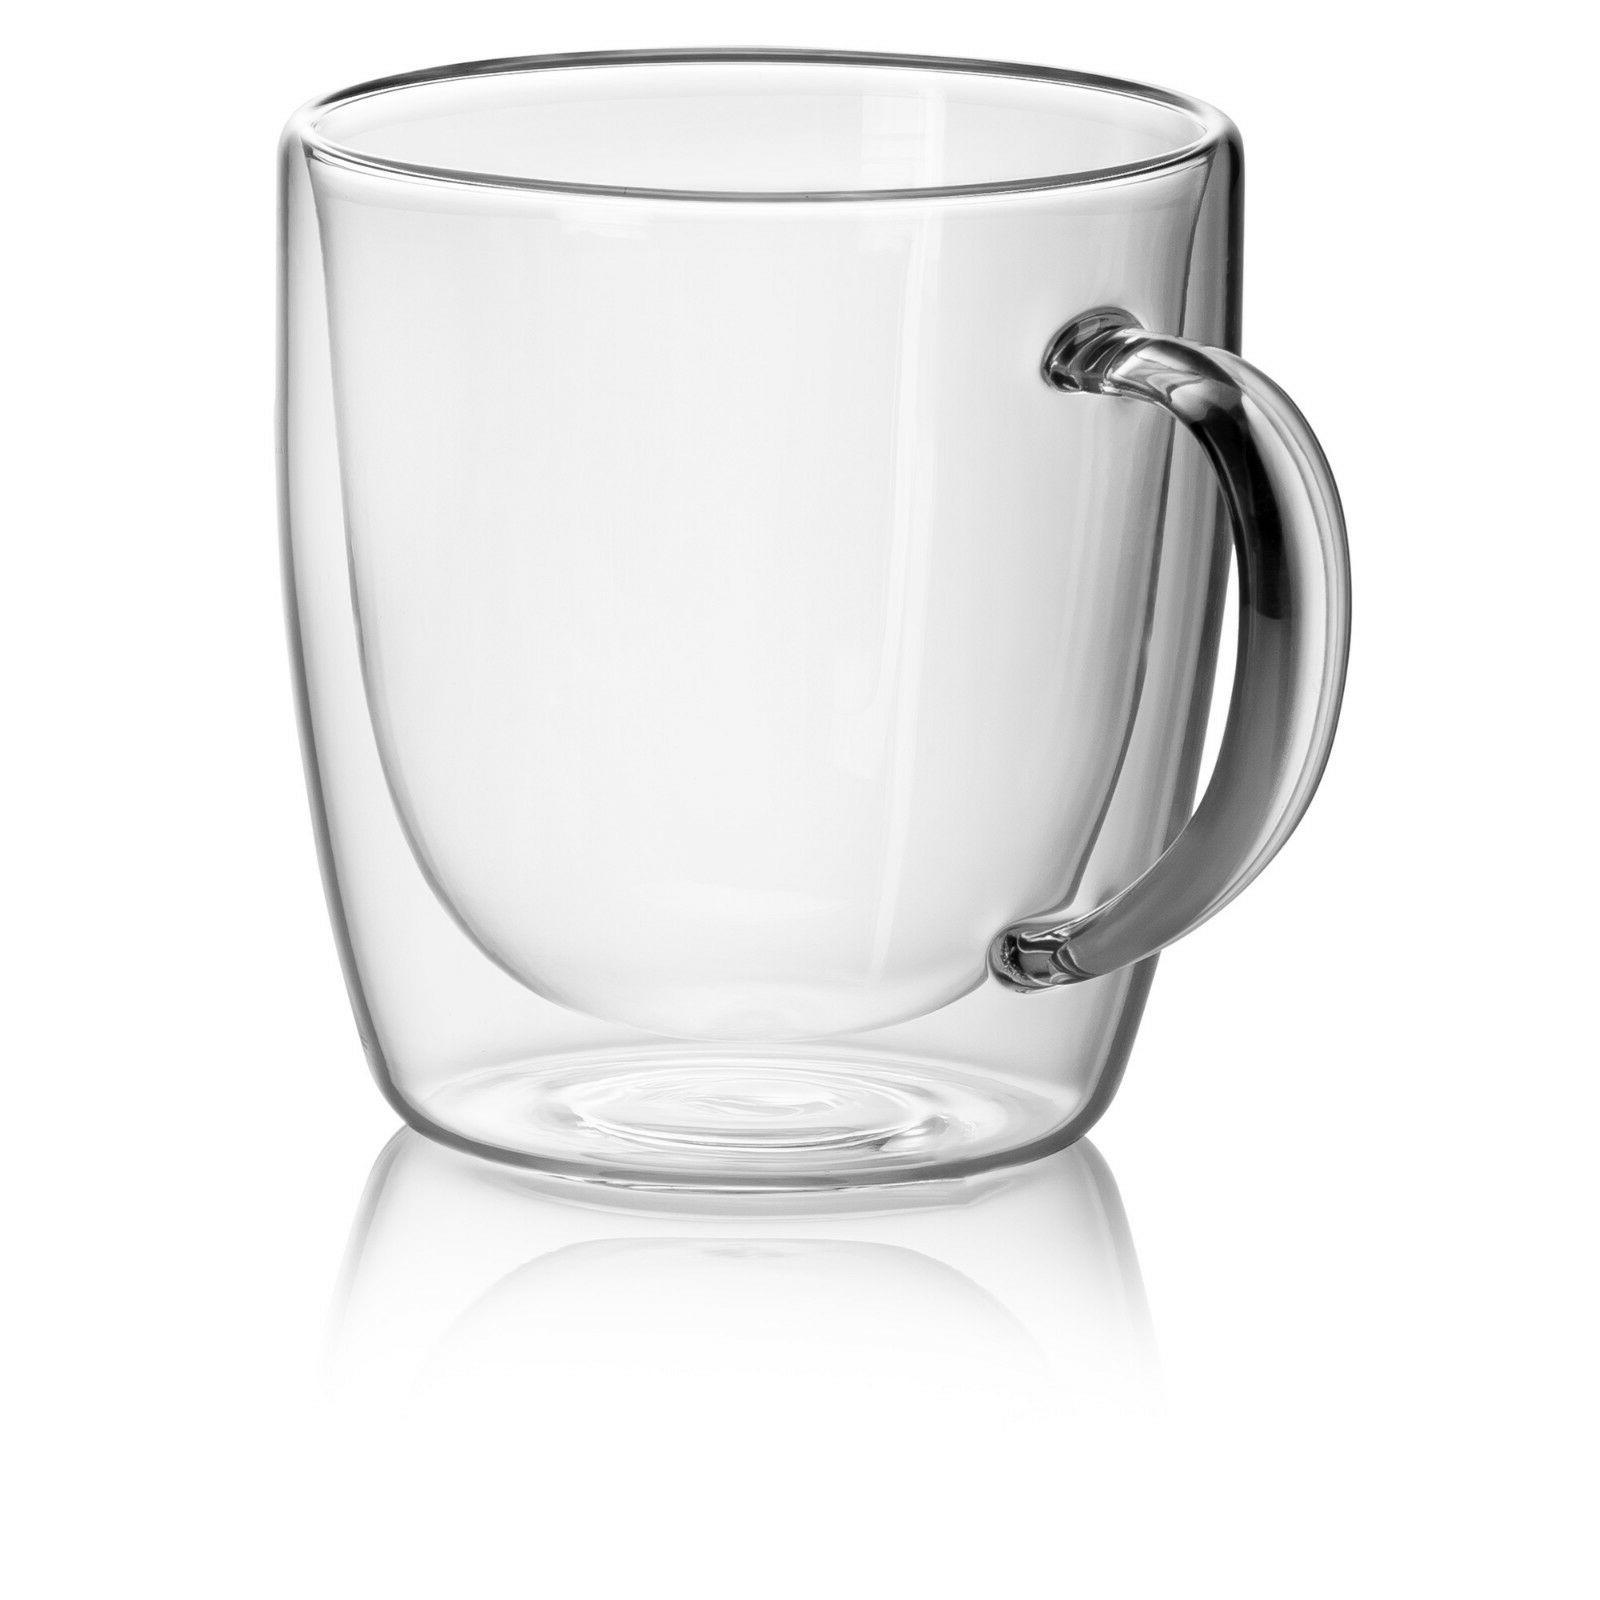 JECOBI Glass Double Tea Mug 14 oz